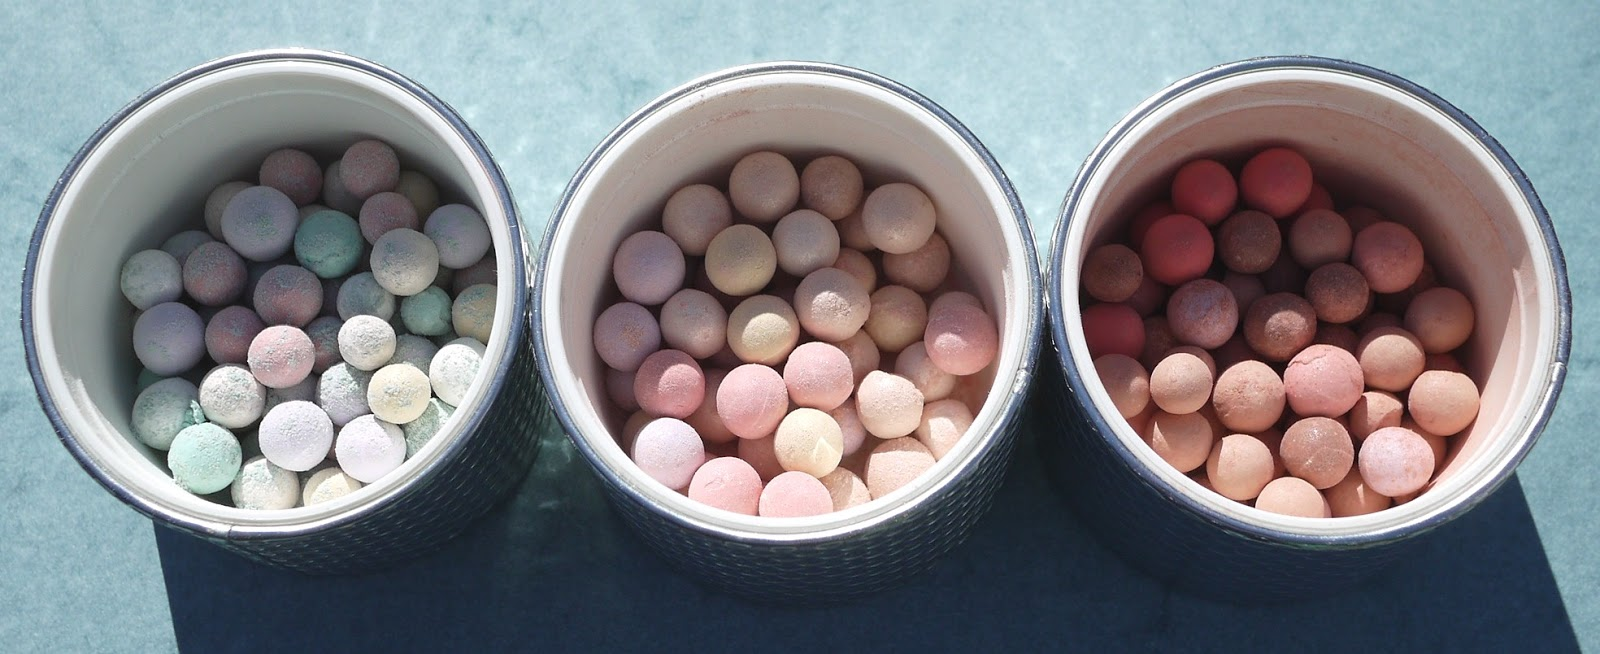 Best Things in Beauty: Guerlain Météorites Pearls from the ...